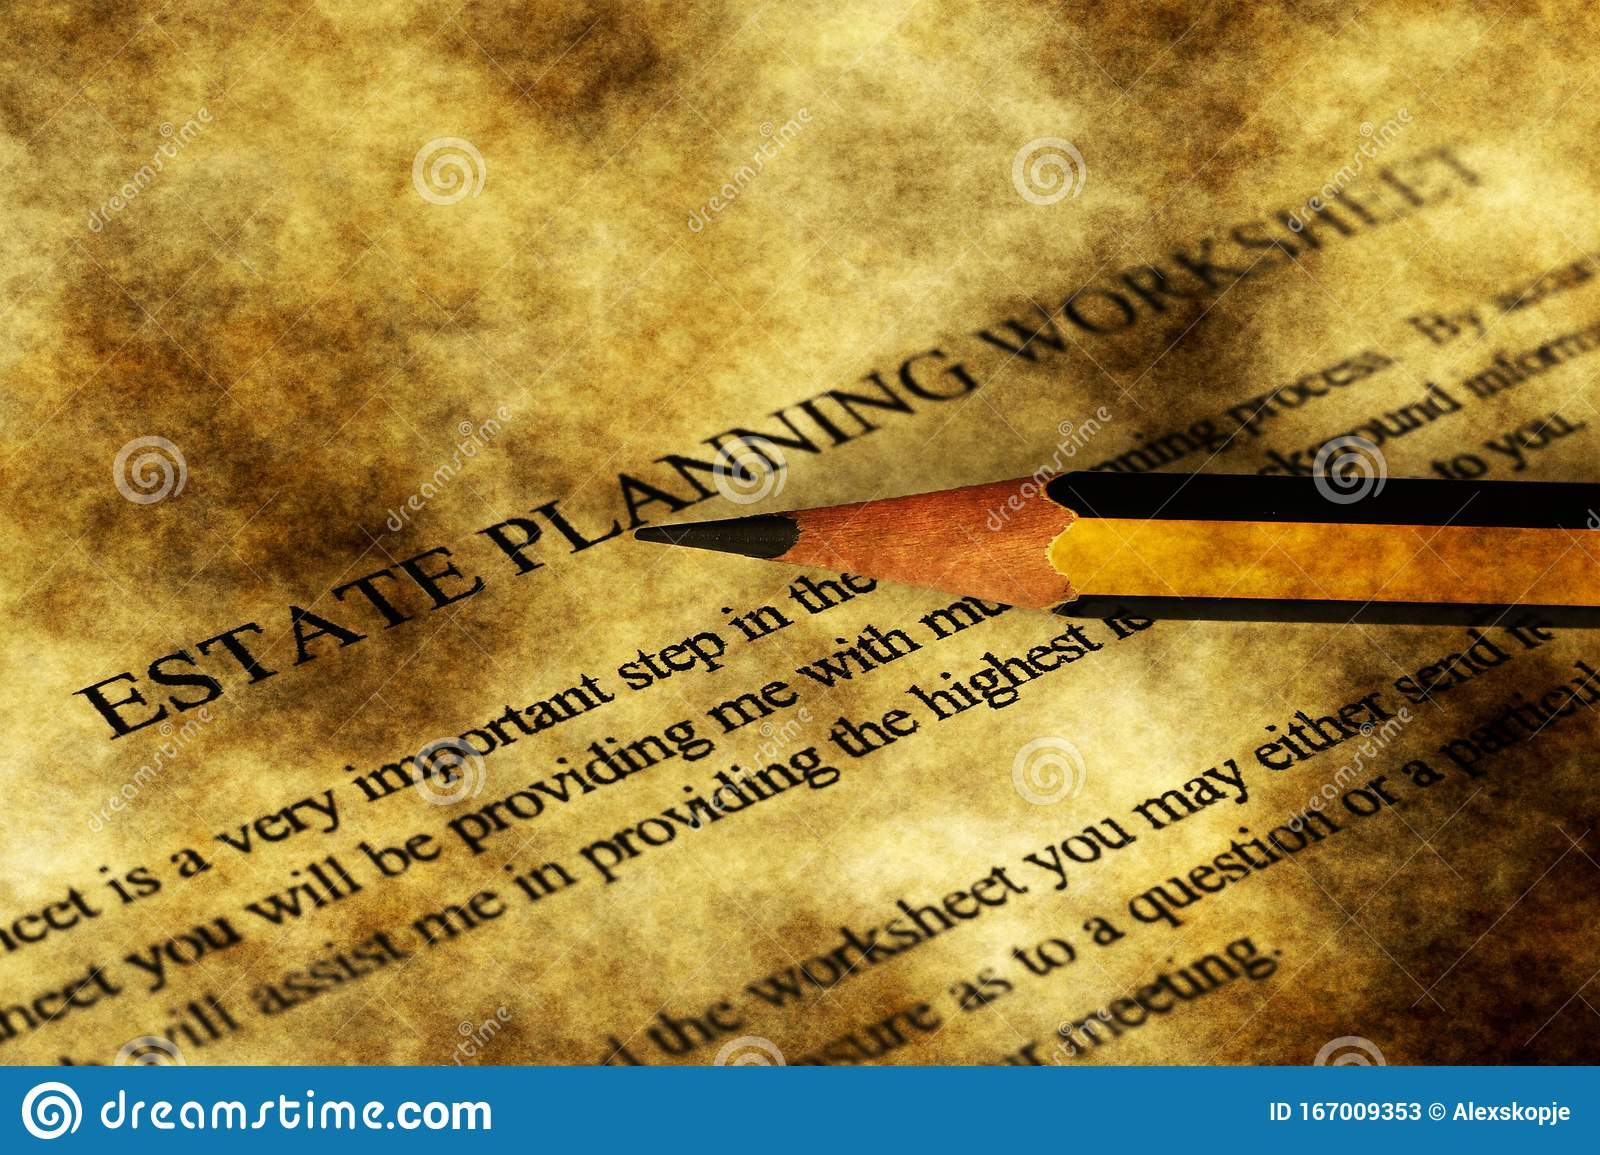 Estate Planning Worksheet Grunge Concept Stock Image